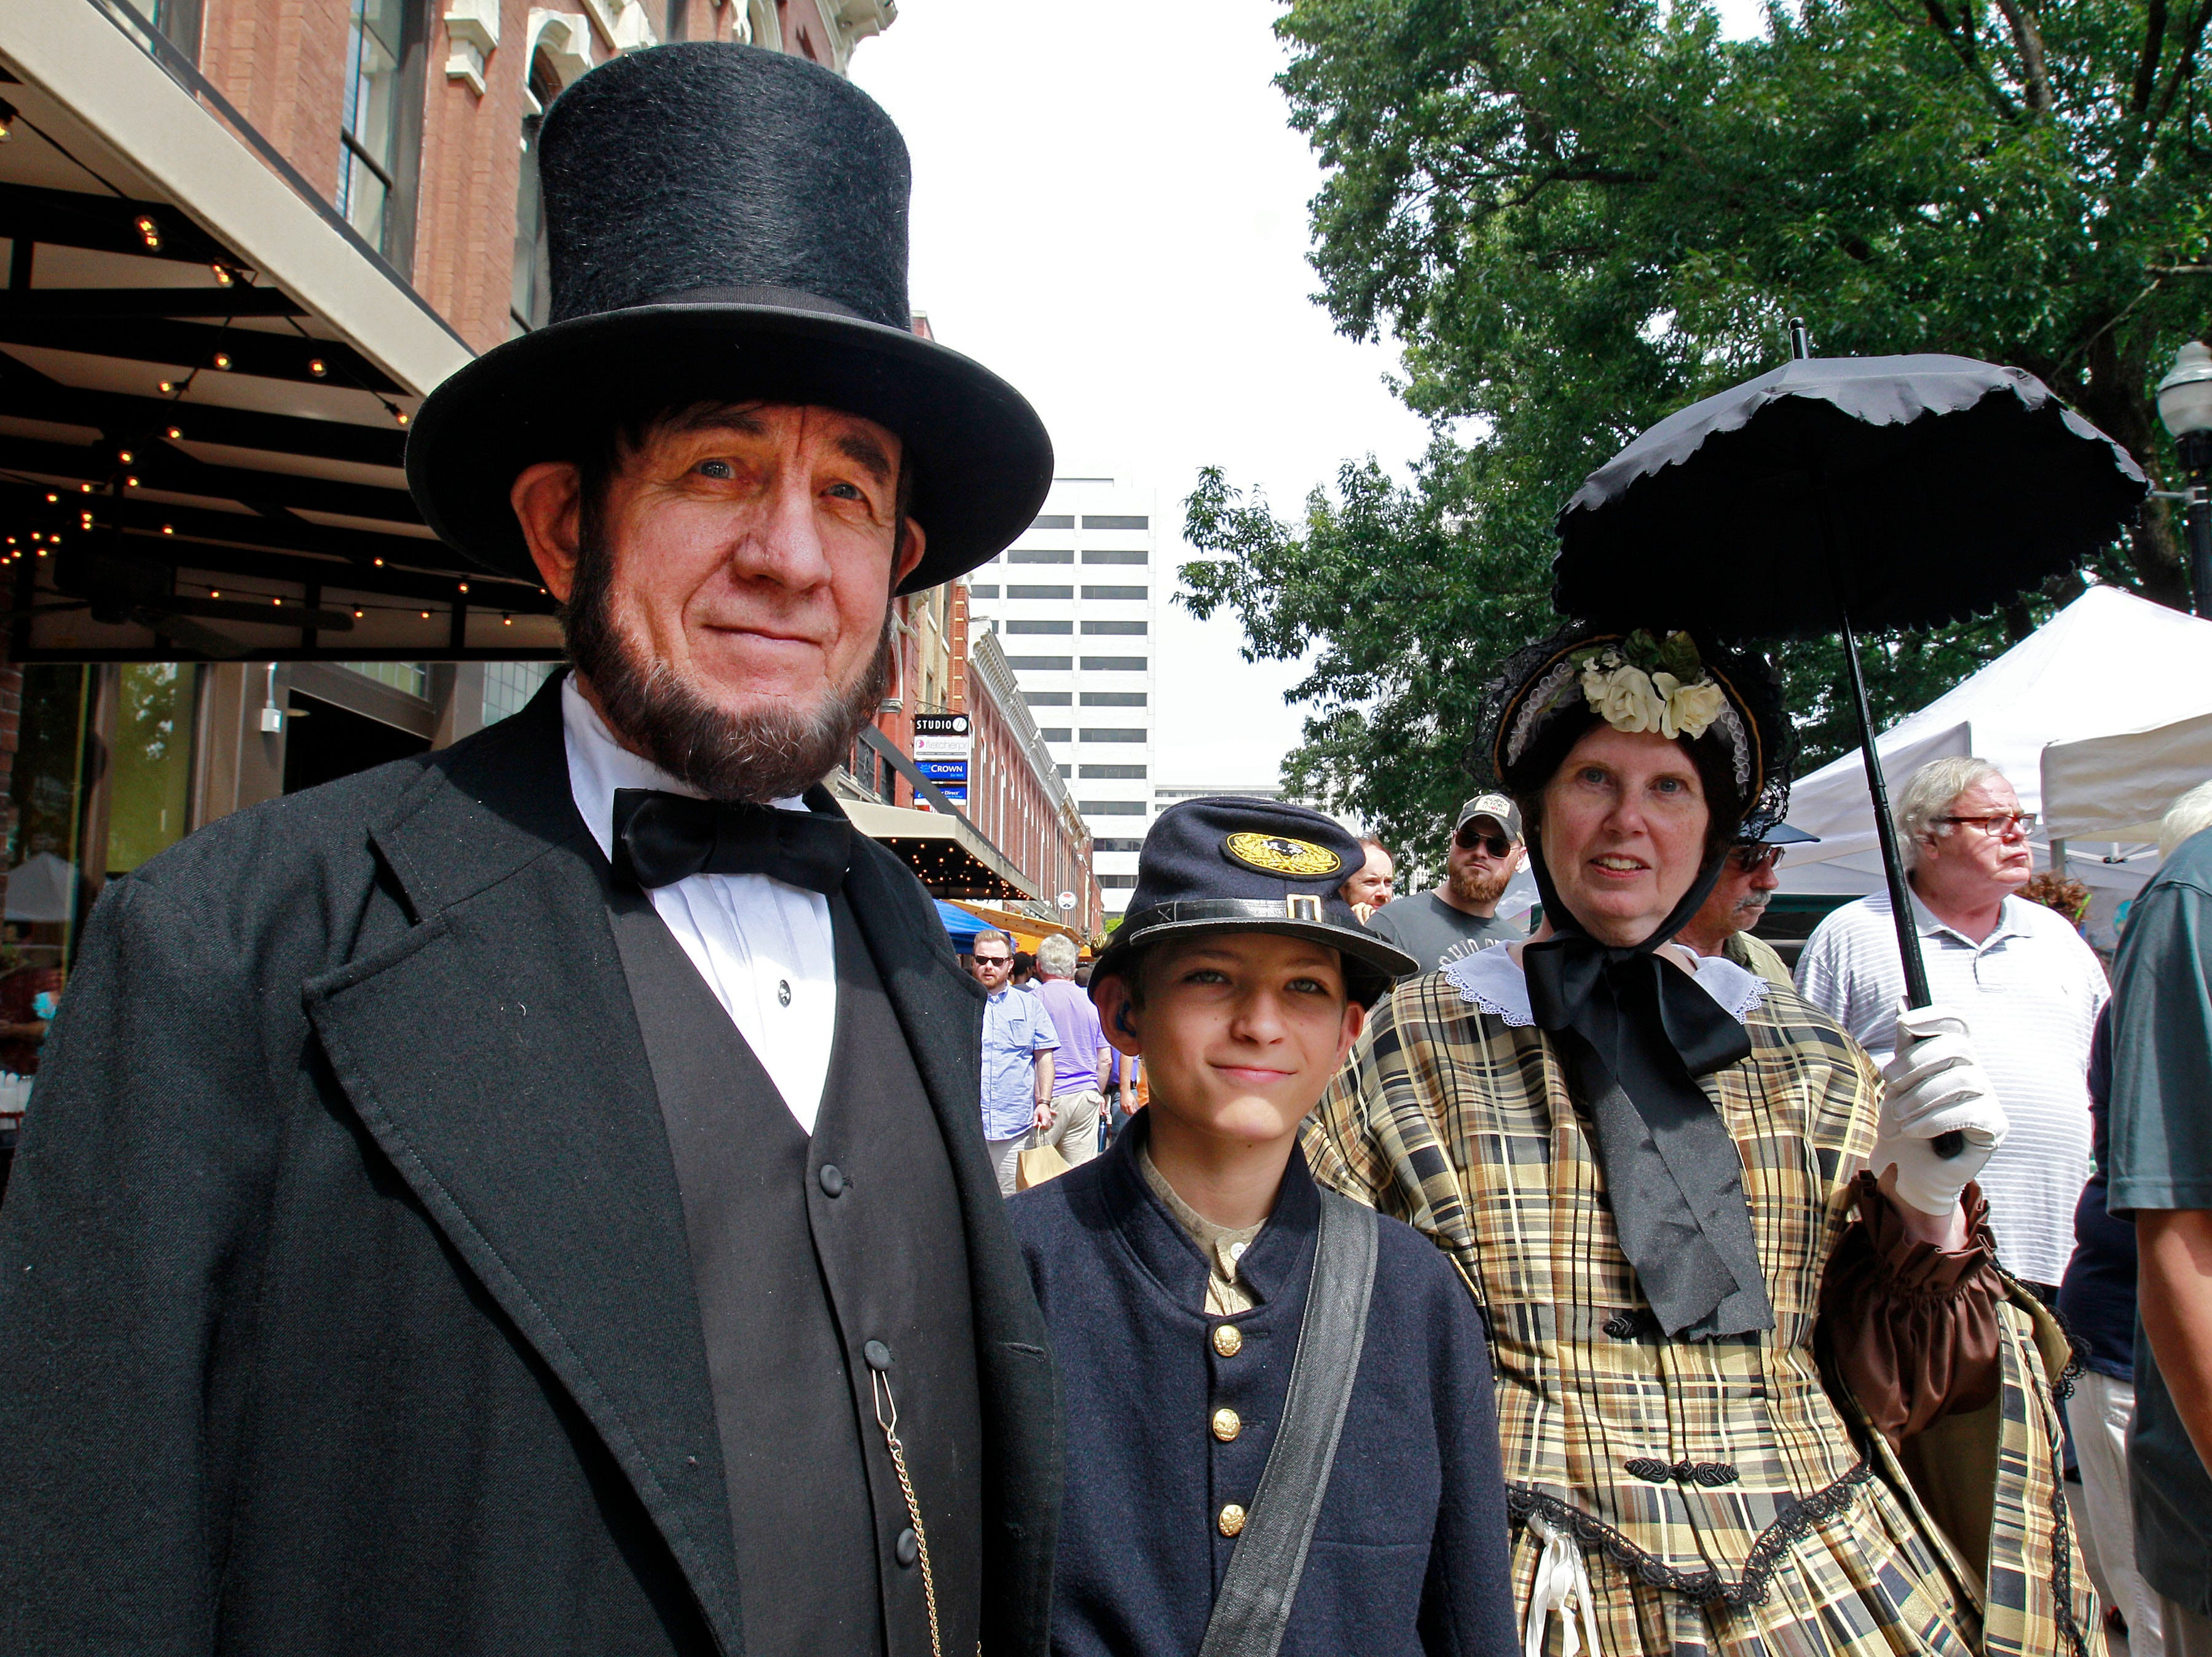 "Tom ""Abraham Lincoln"", left, along with his son Kyle, center, and wife, Sue ""Mary Lincoln"" Wright, walk along Market Square during History Day festivities downtown Saturday, August 16, 2014 in Knoxville, Tennessee. (Photo by Wade Payne, Special to the News Sentinel)"